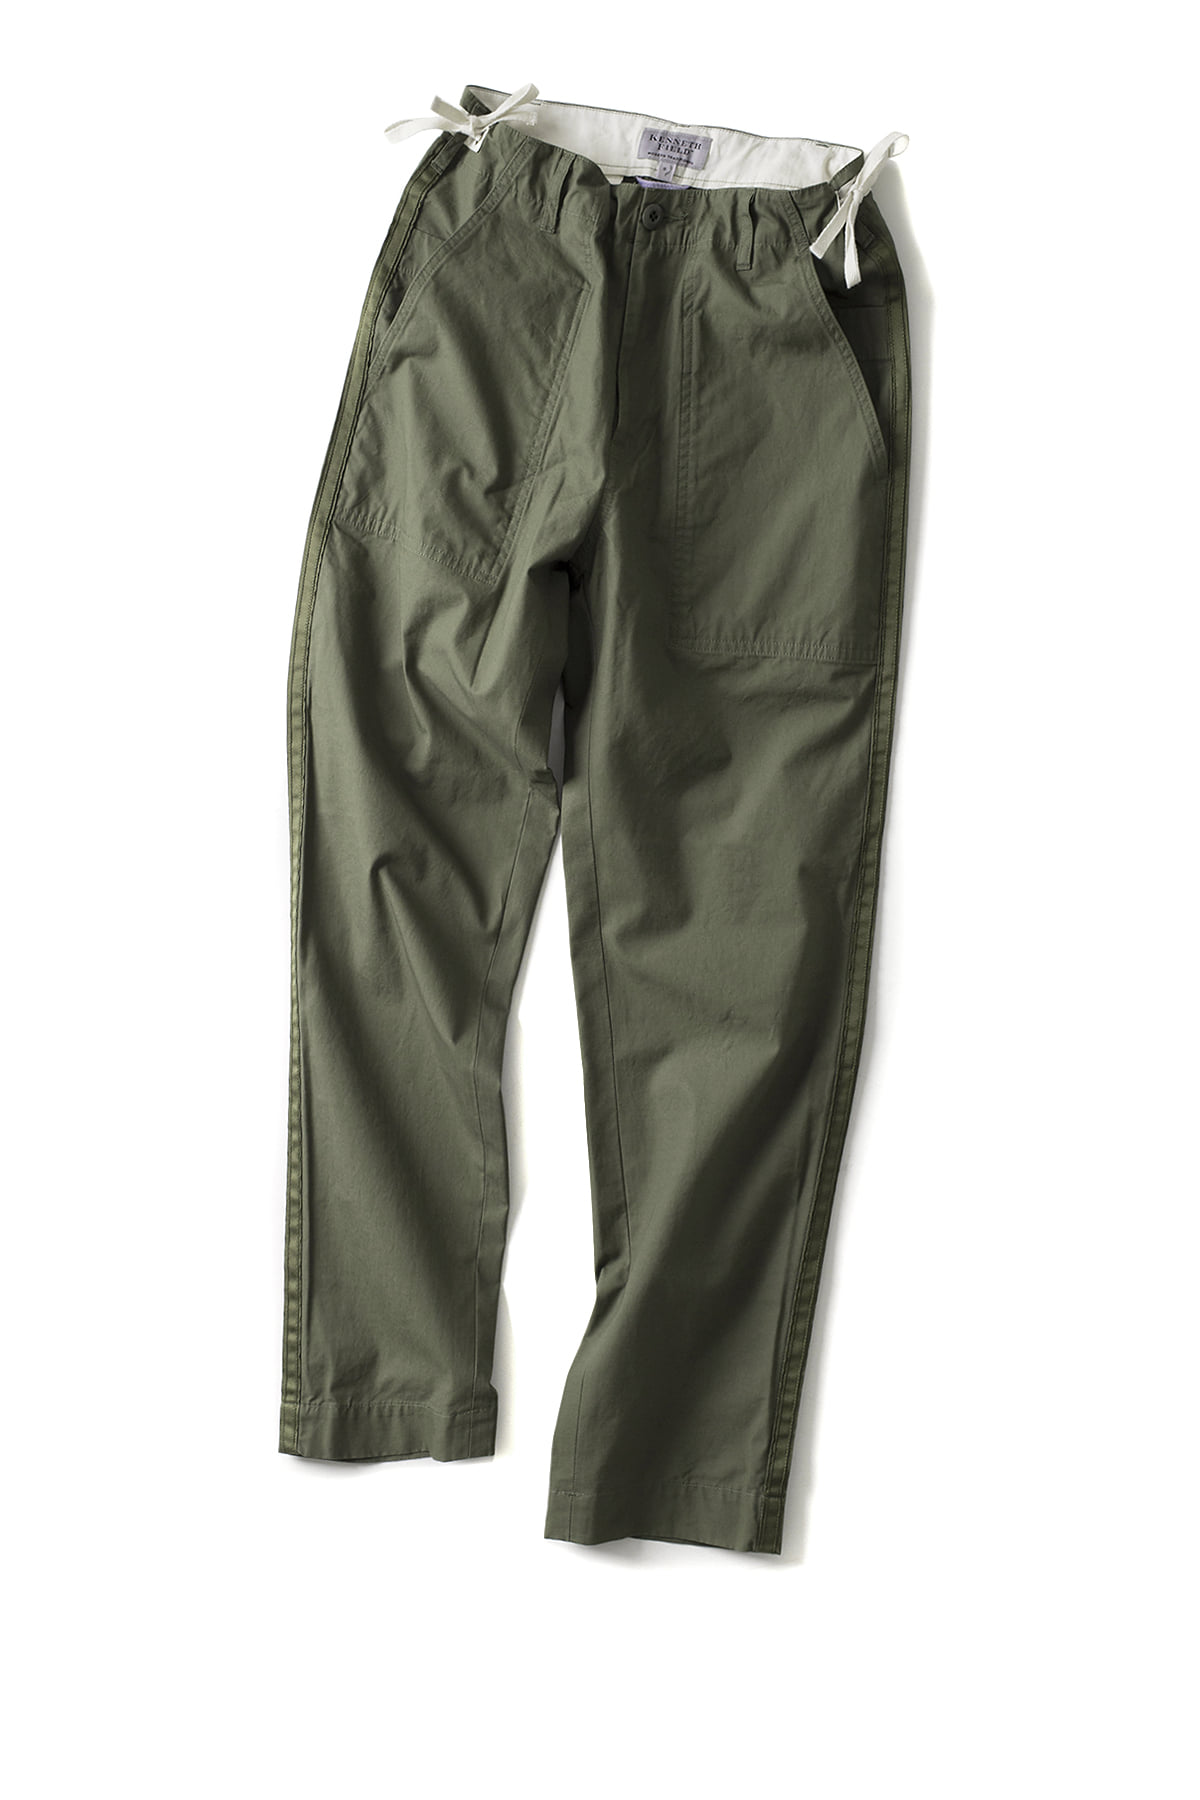 Kenneth Field : Ceremony Trouser Ripstop (Olive)